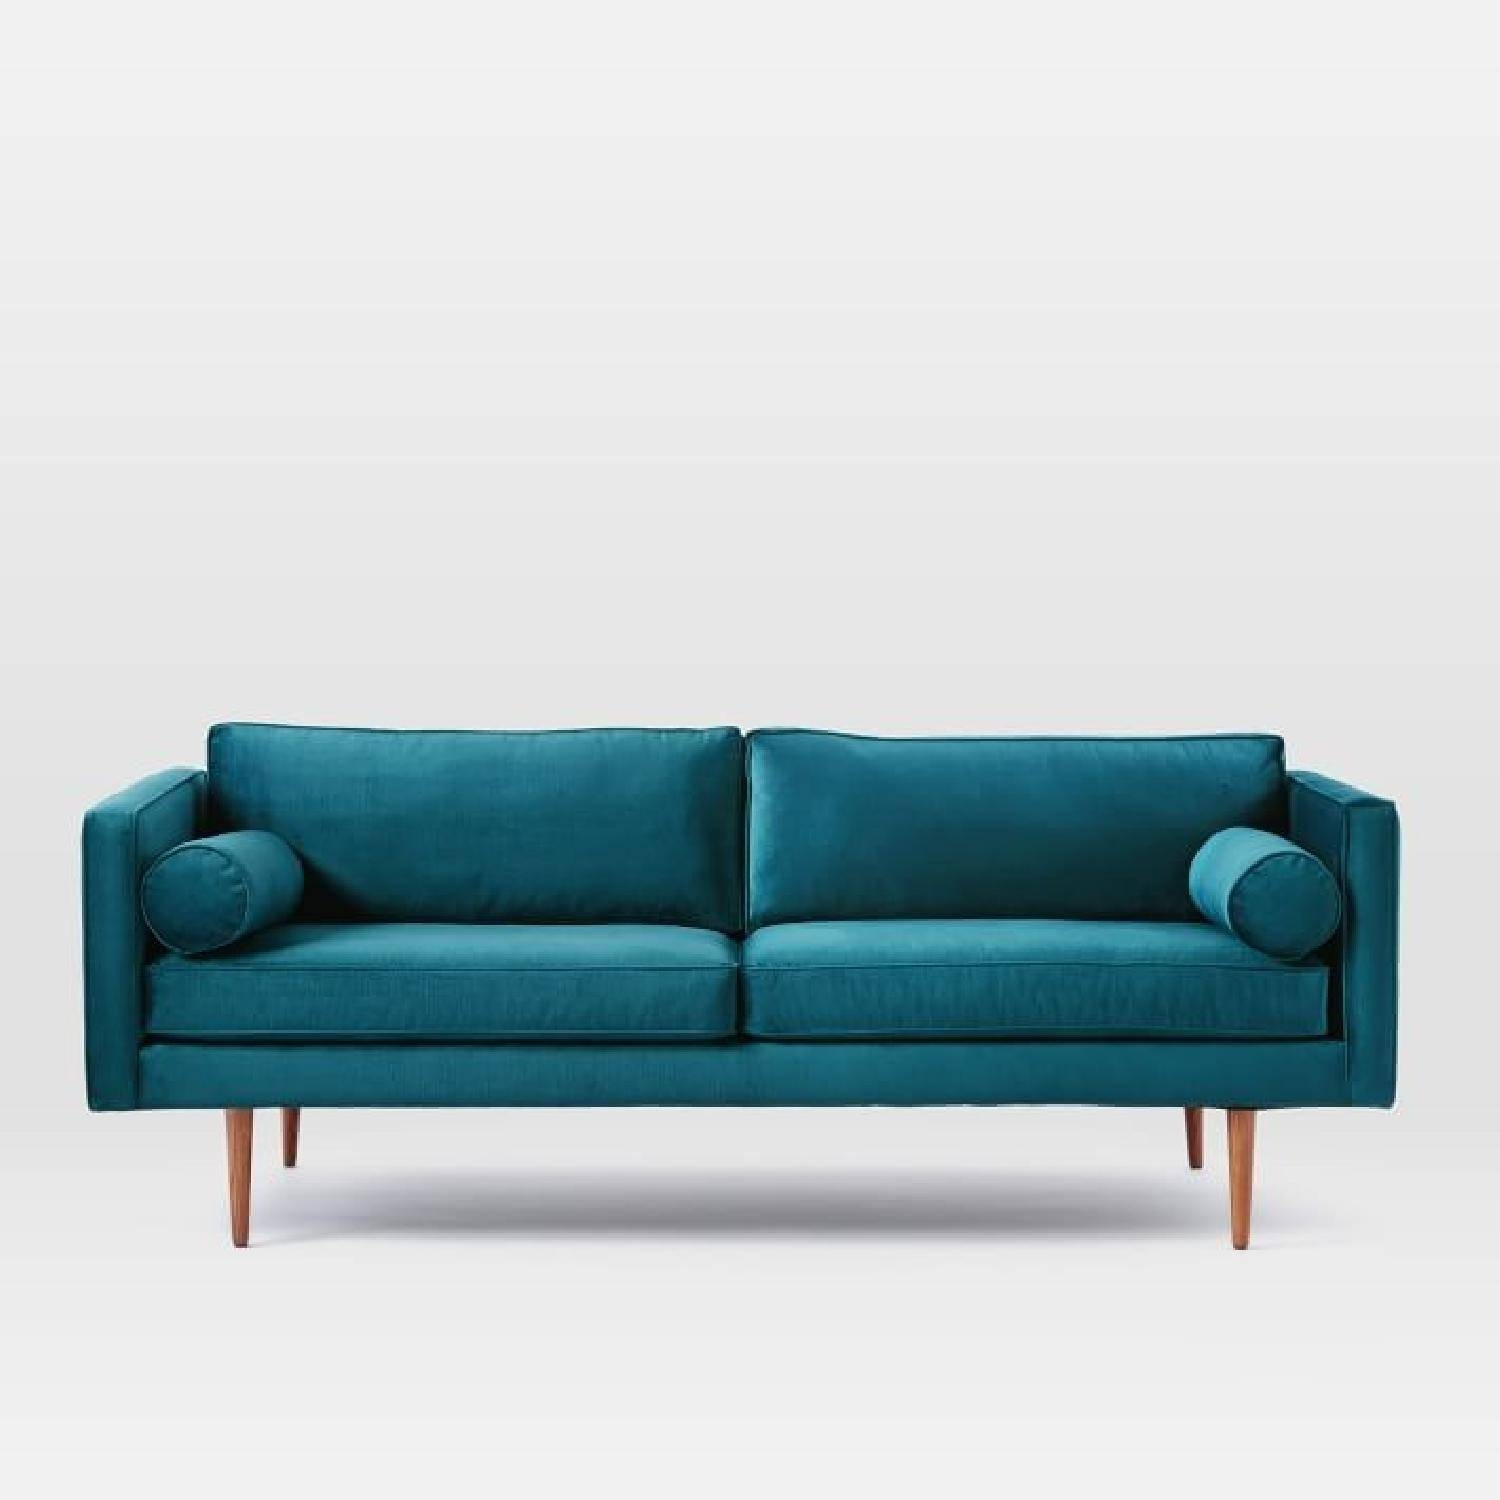 Fabulous Ideas Sofa Slipcovers At Kmart Mesmerize Tufted Denim throughout Sofa Beds With Support Boards (Image 3 of 15)